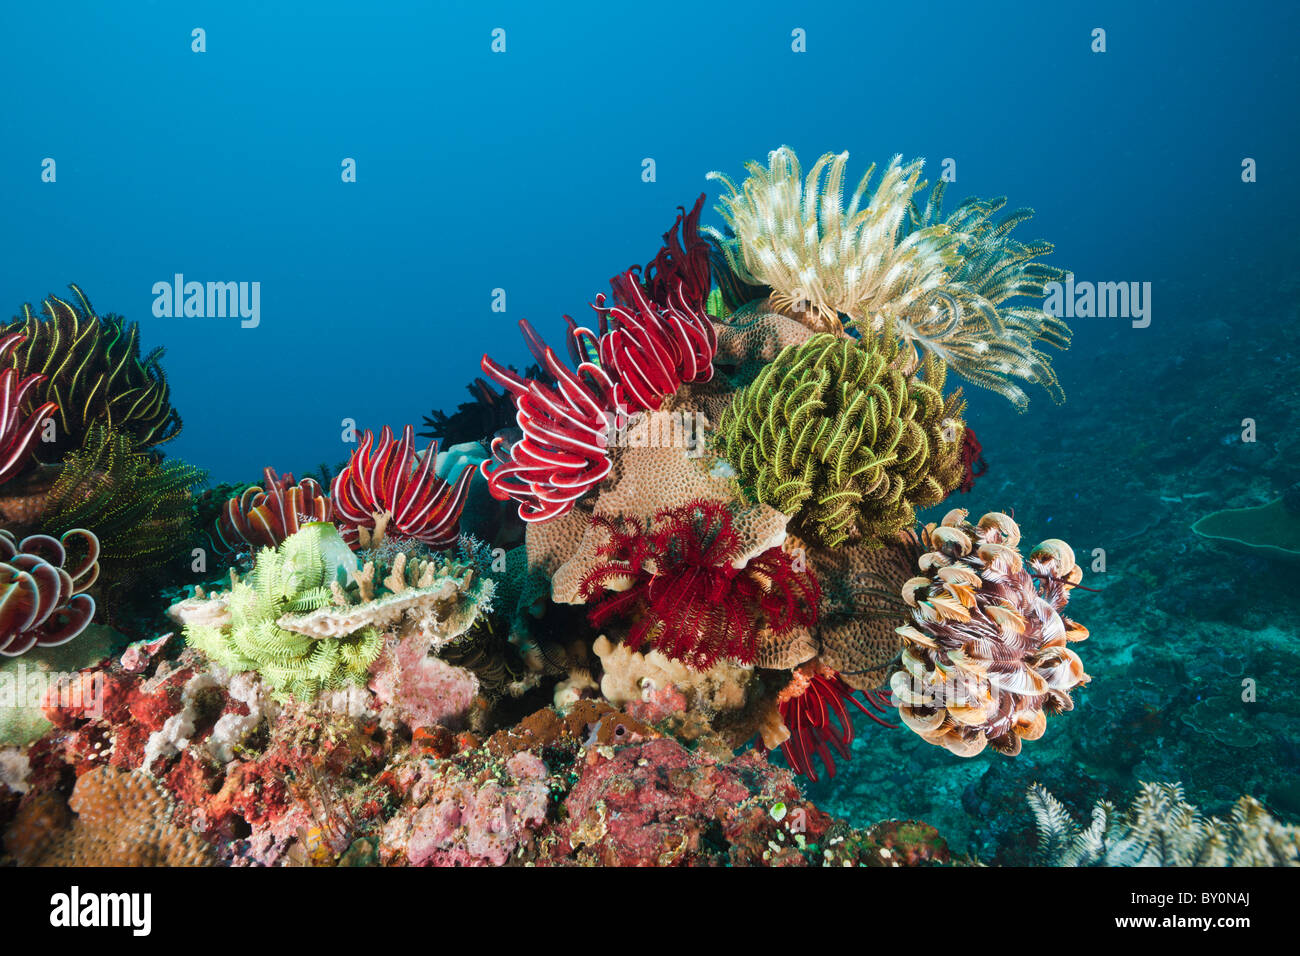 Crinoids on Coral Reef, Comanthina sp., Amed, Bali, Indonesia - Stock Image